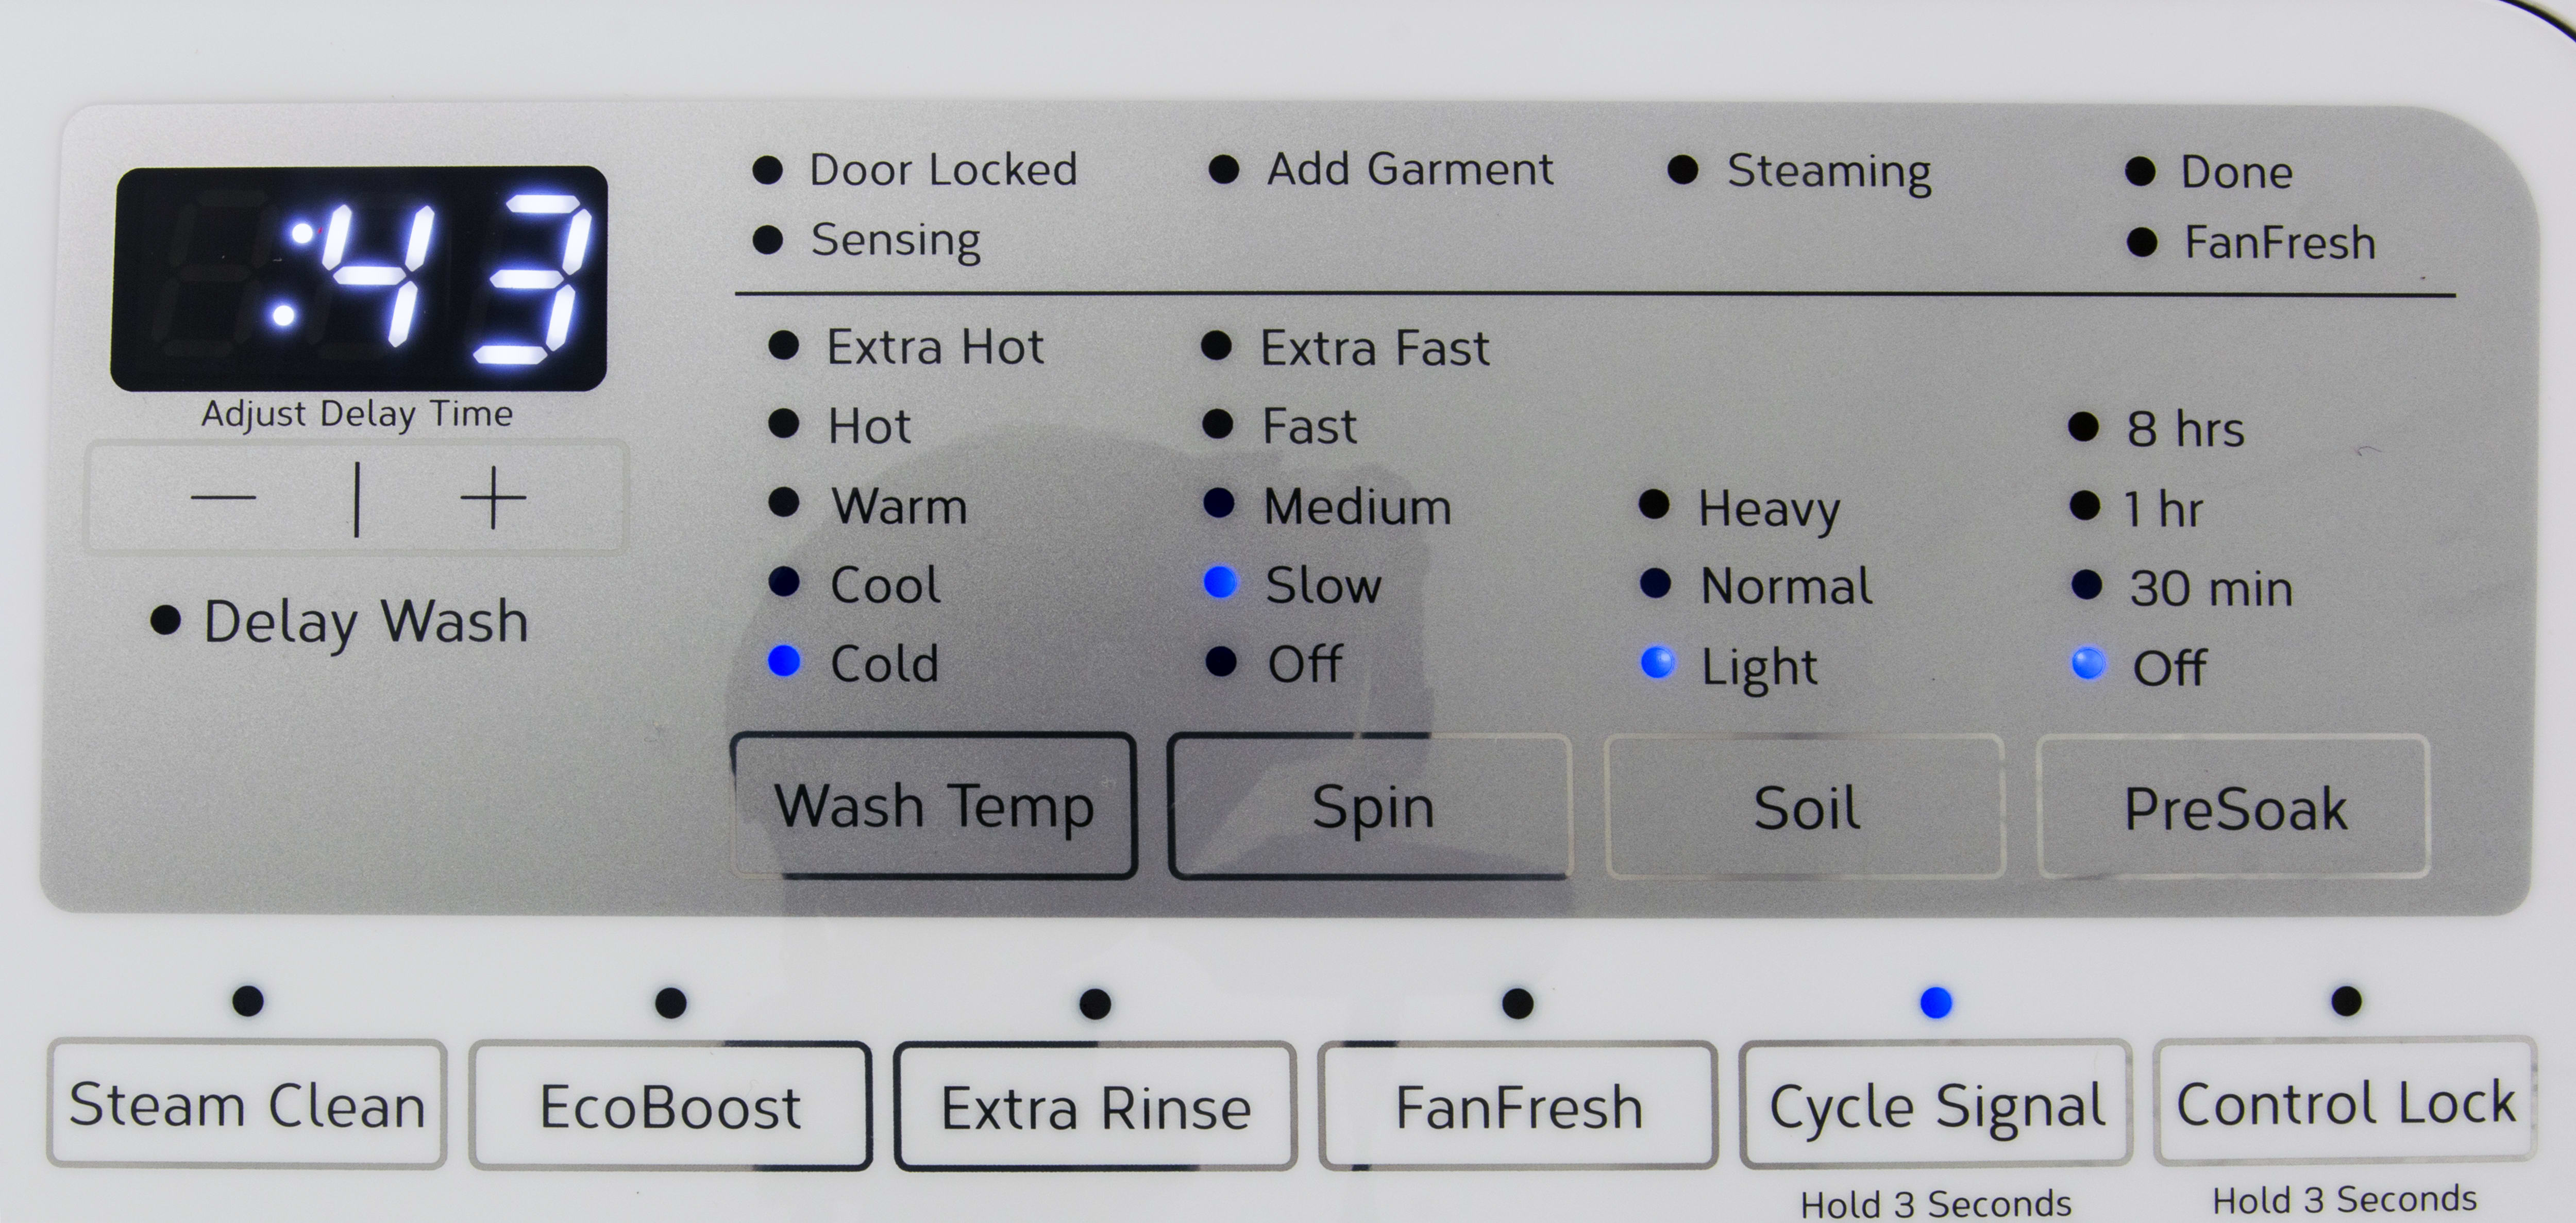 Whirlpool WFW90HEFW Front Load Washer Review - Reviewed Laundry